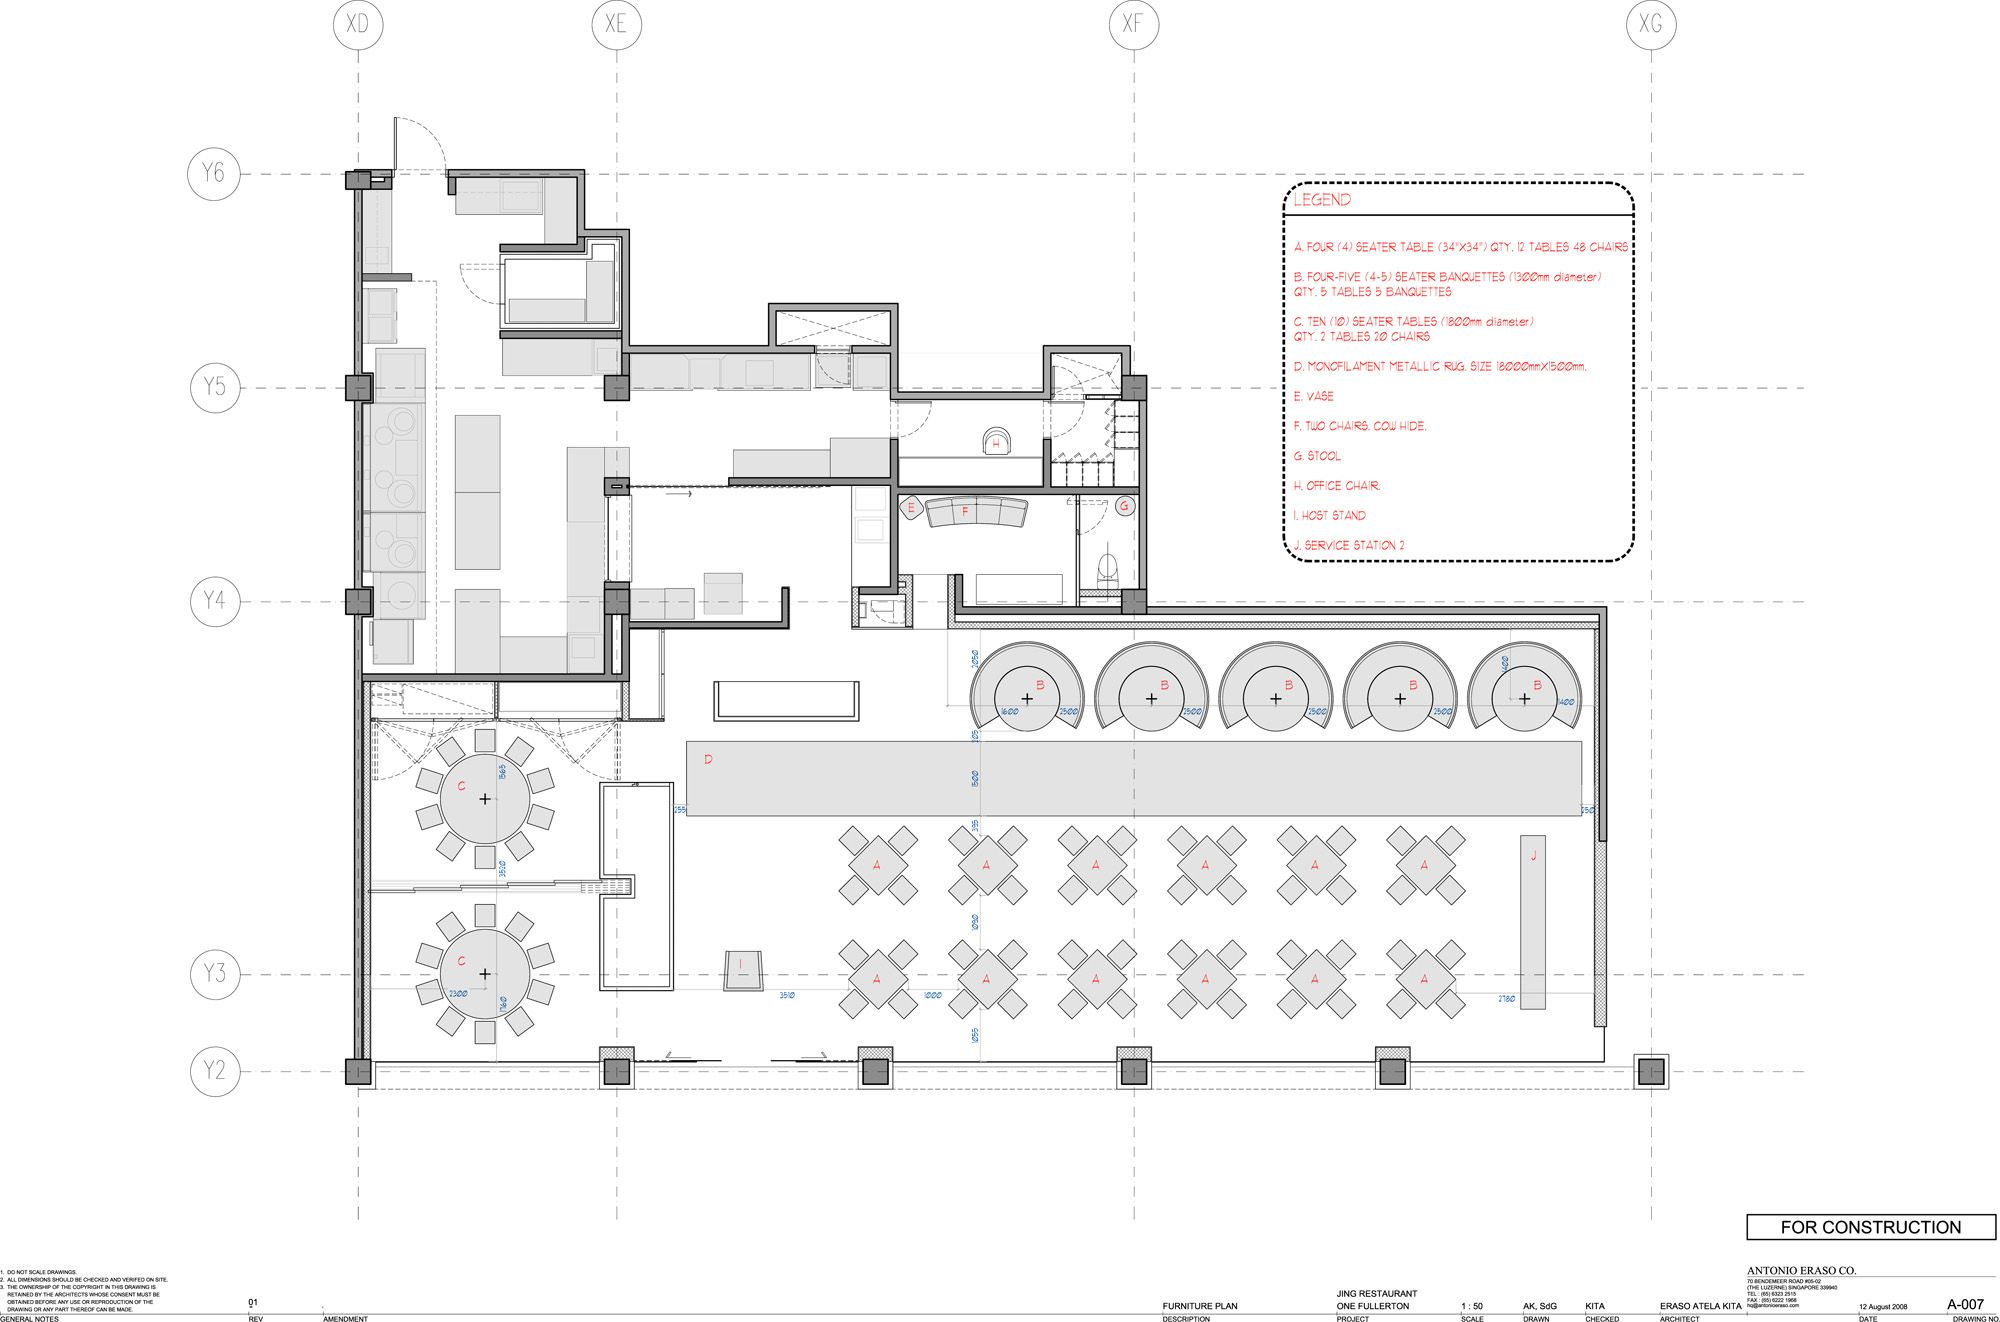 Restaurant Kitchen Floor Plan Jing Restaurant  Antonio Eraso  Restaurants Ceiling And